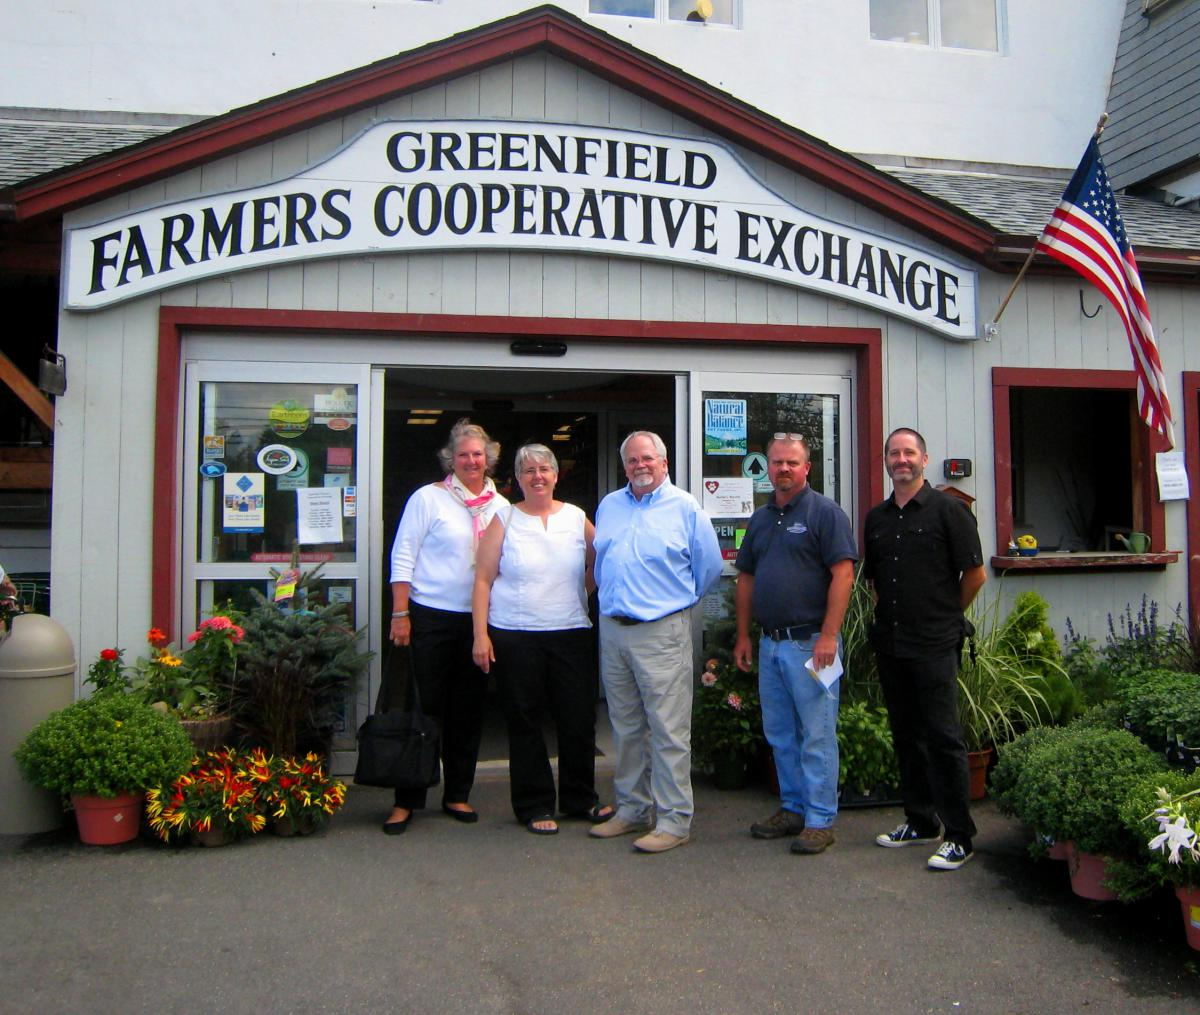 Greenfield Farmers Co-op